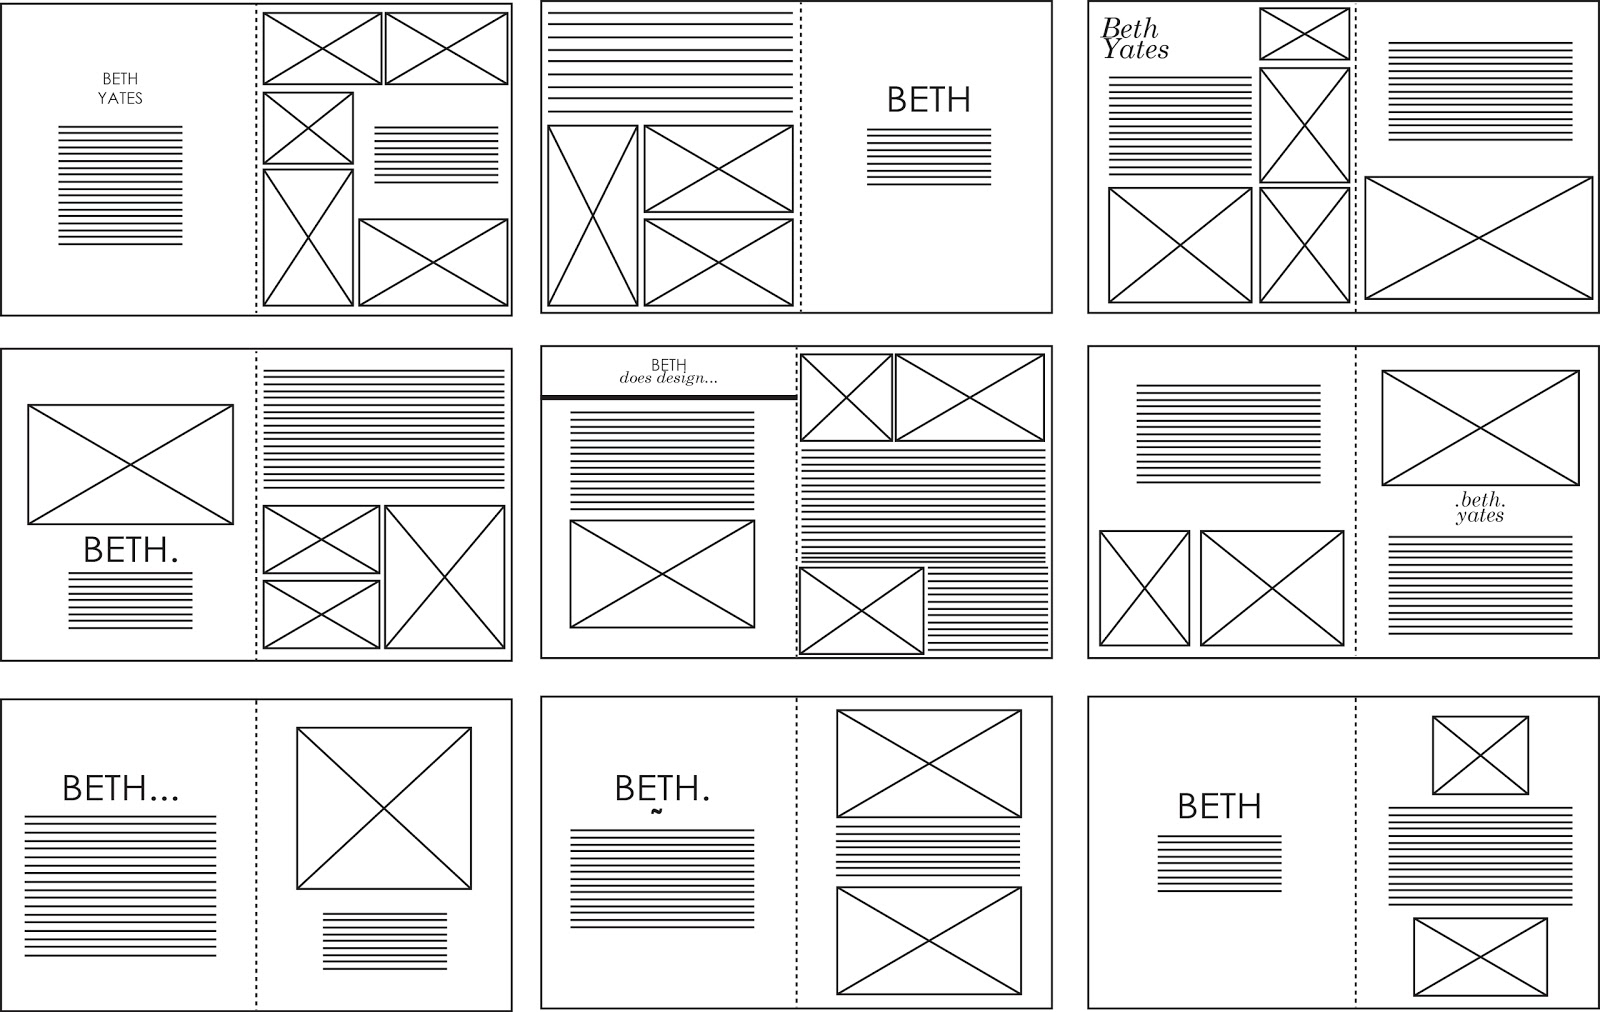 sophie wilson design practice indesign layouts vectored. Black Bedroom Furniture Sets. Home Design Ideas